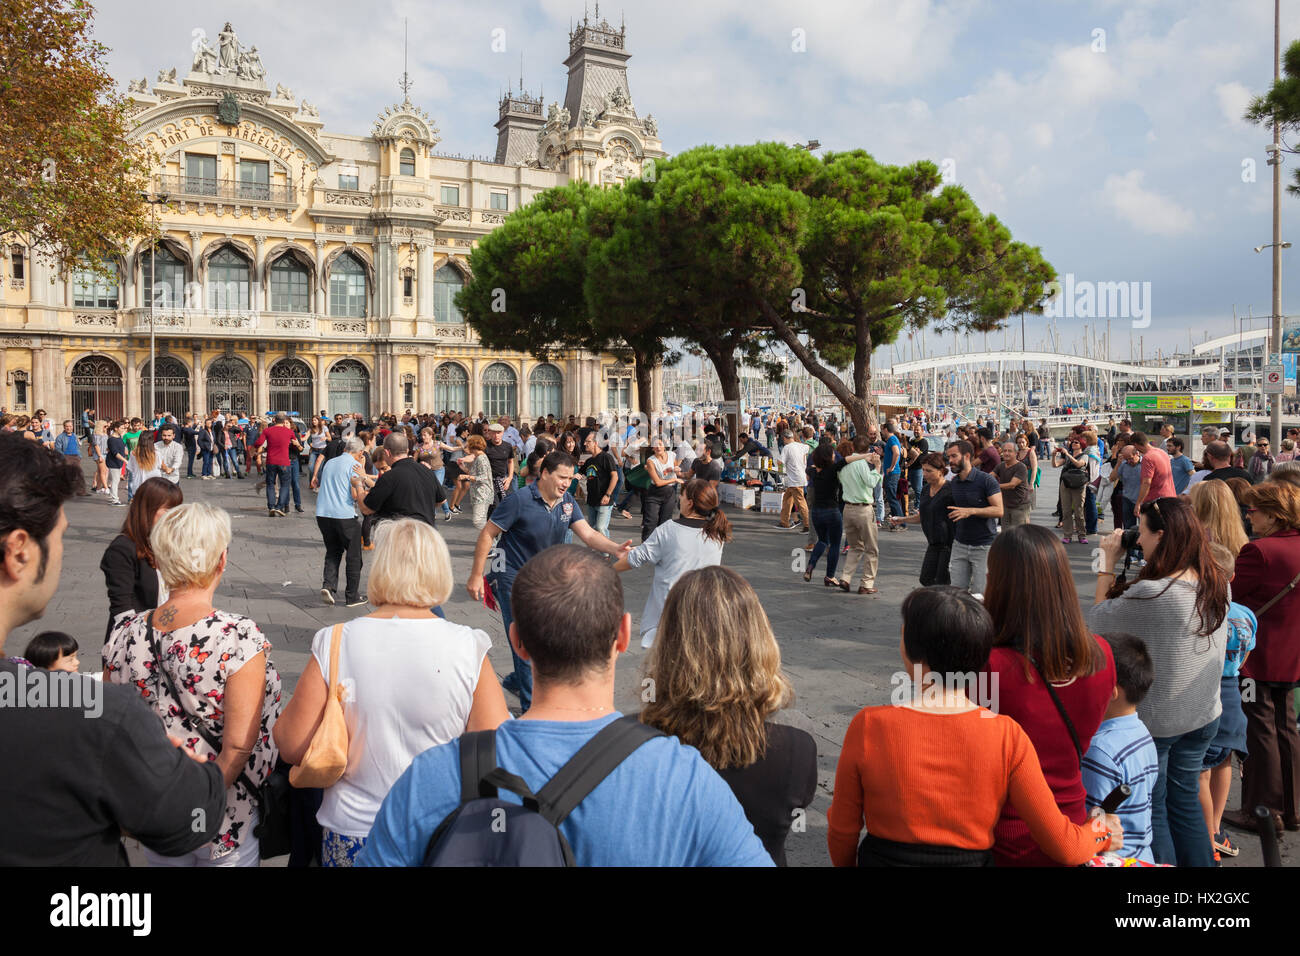 Spain, Catalonia, Barcelona, people dancing, watching and hanging out on a square in front of Port Authority Building, - Stock Image